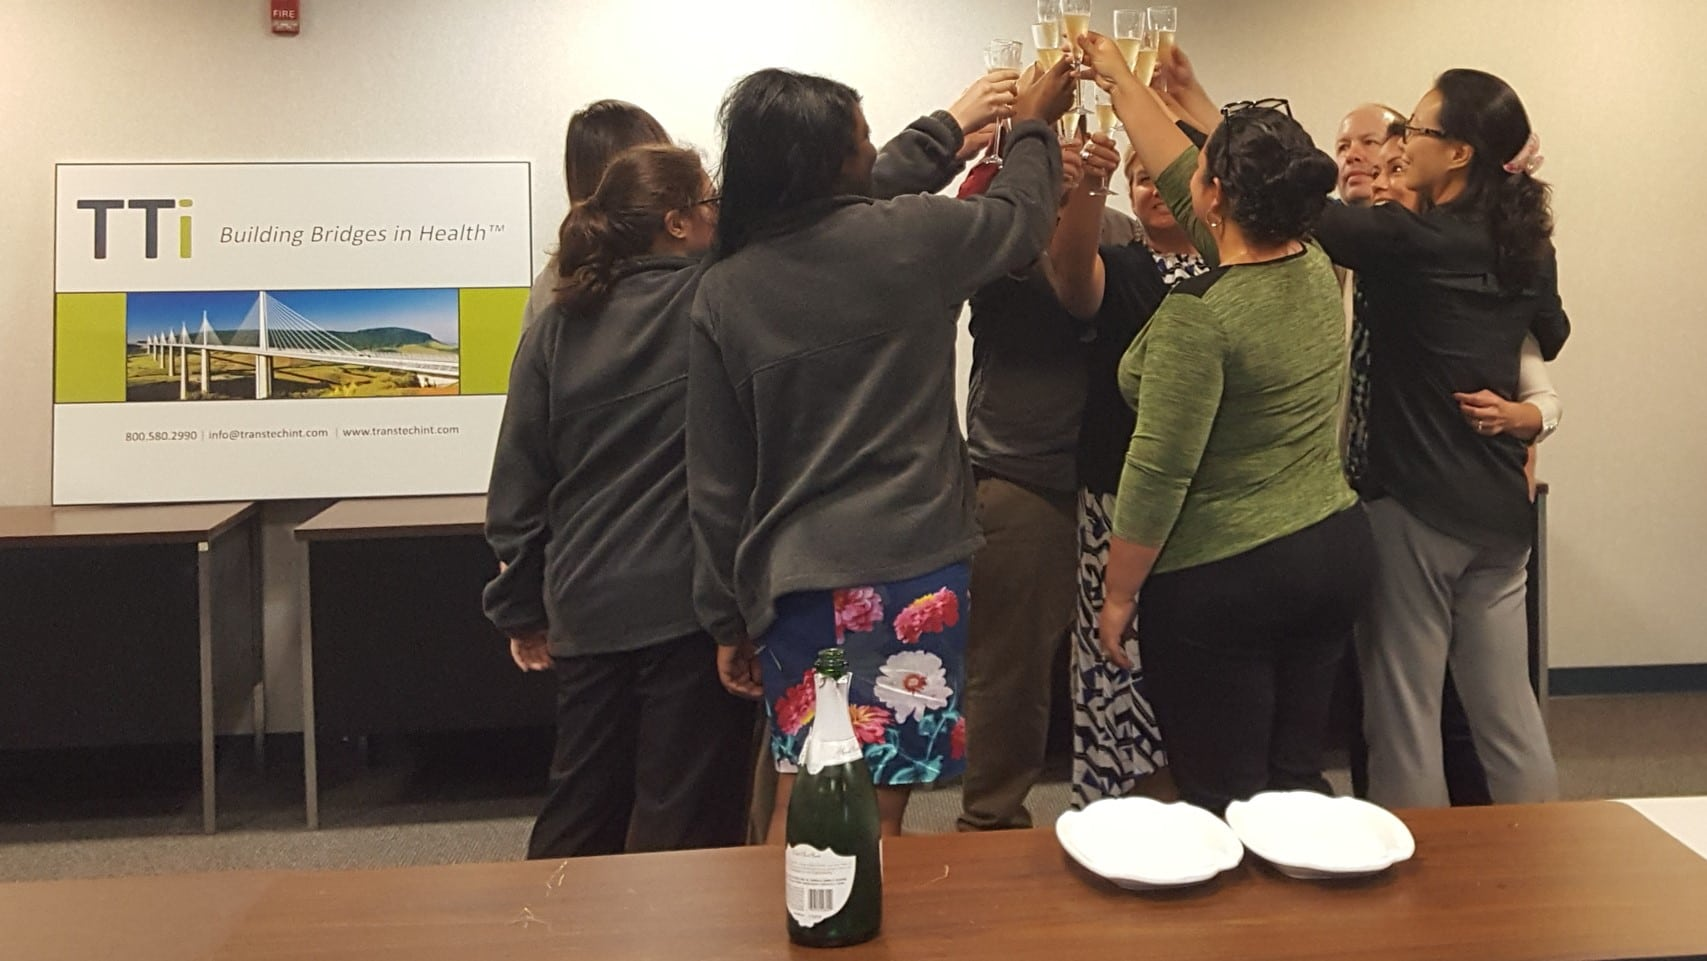 TTi employees in the conference room toasting with champagne in new office